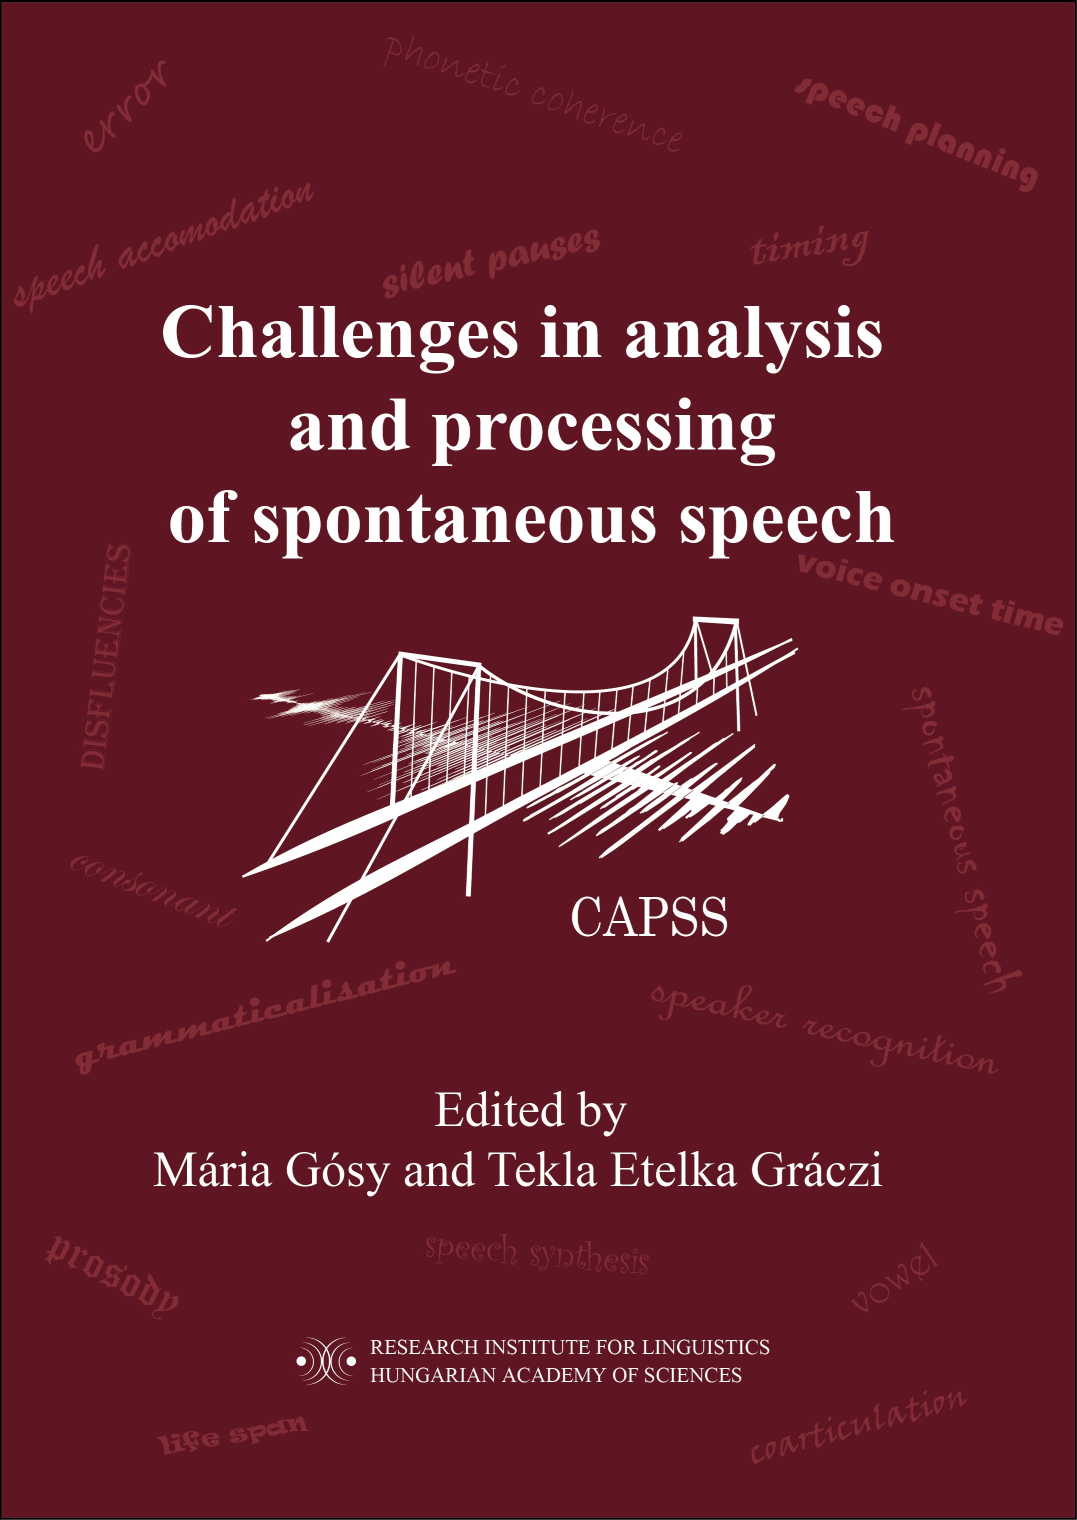 Challenges in analysis and processing of spontaneous speech – könyvmegjelenés